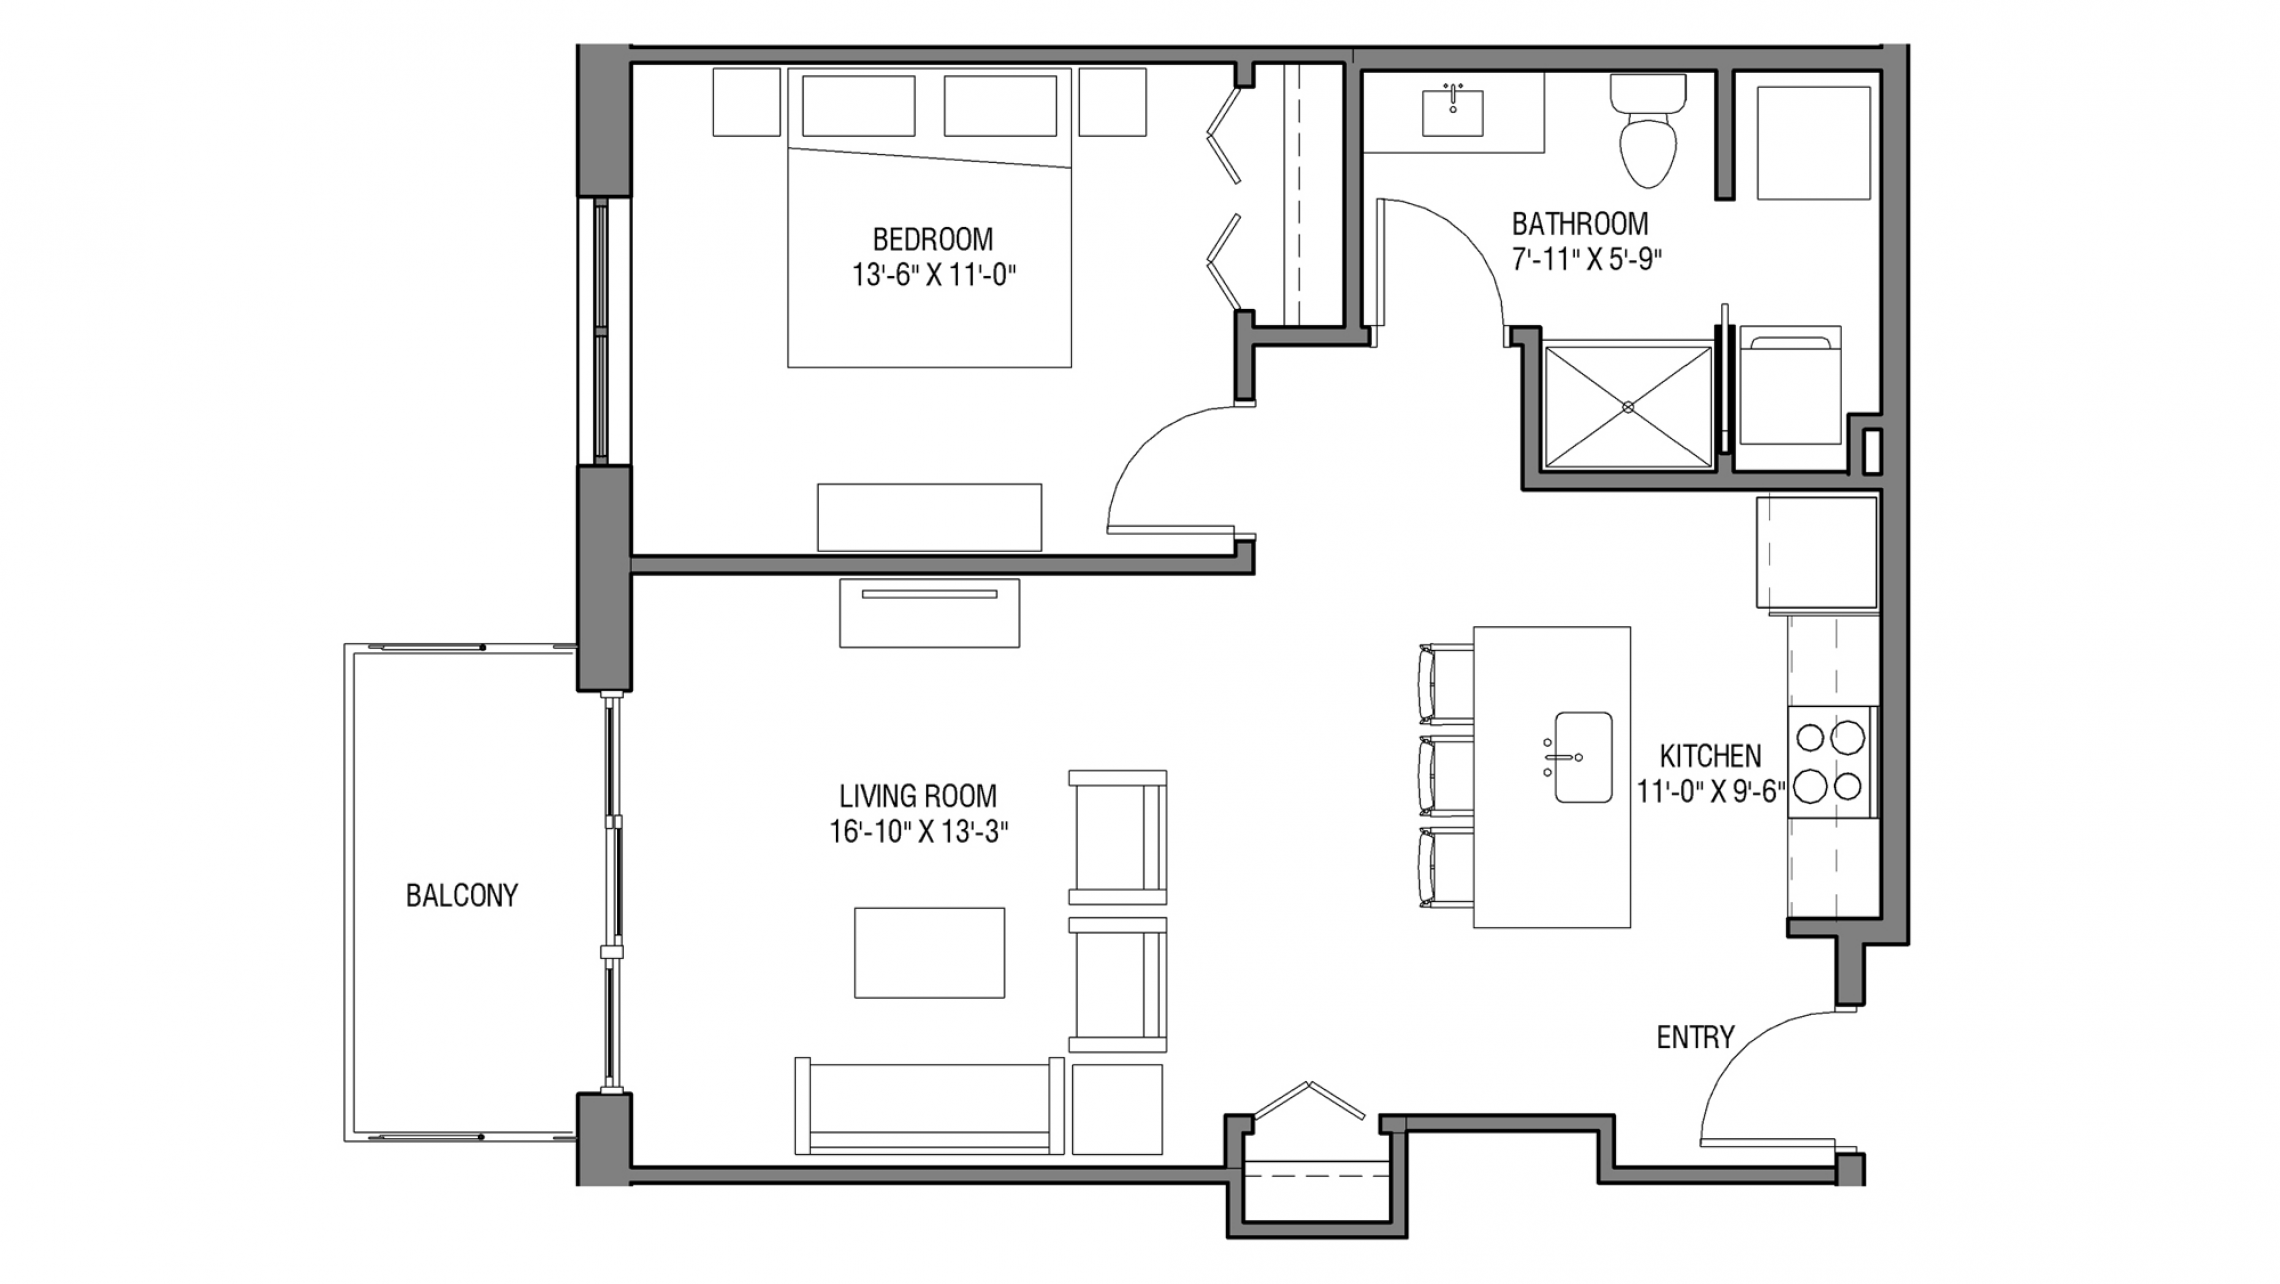 ULI Nine Line 416 - One Bedroom, One Bathroom